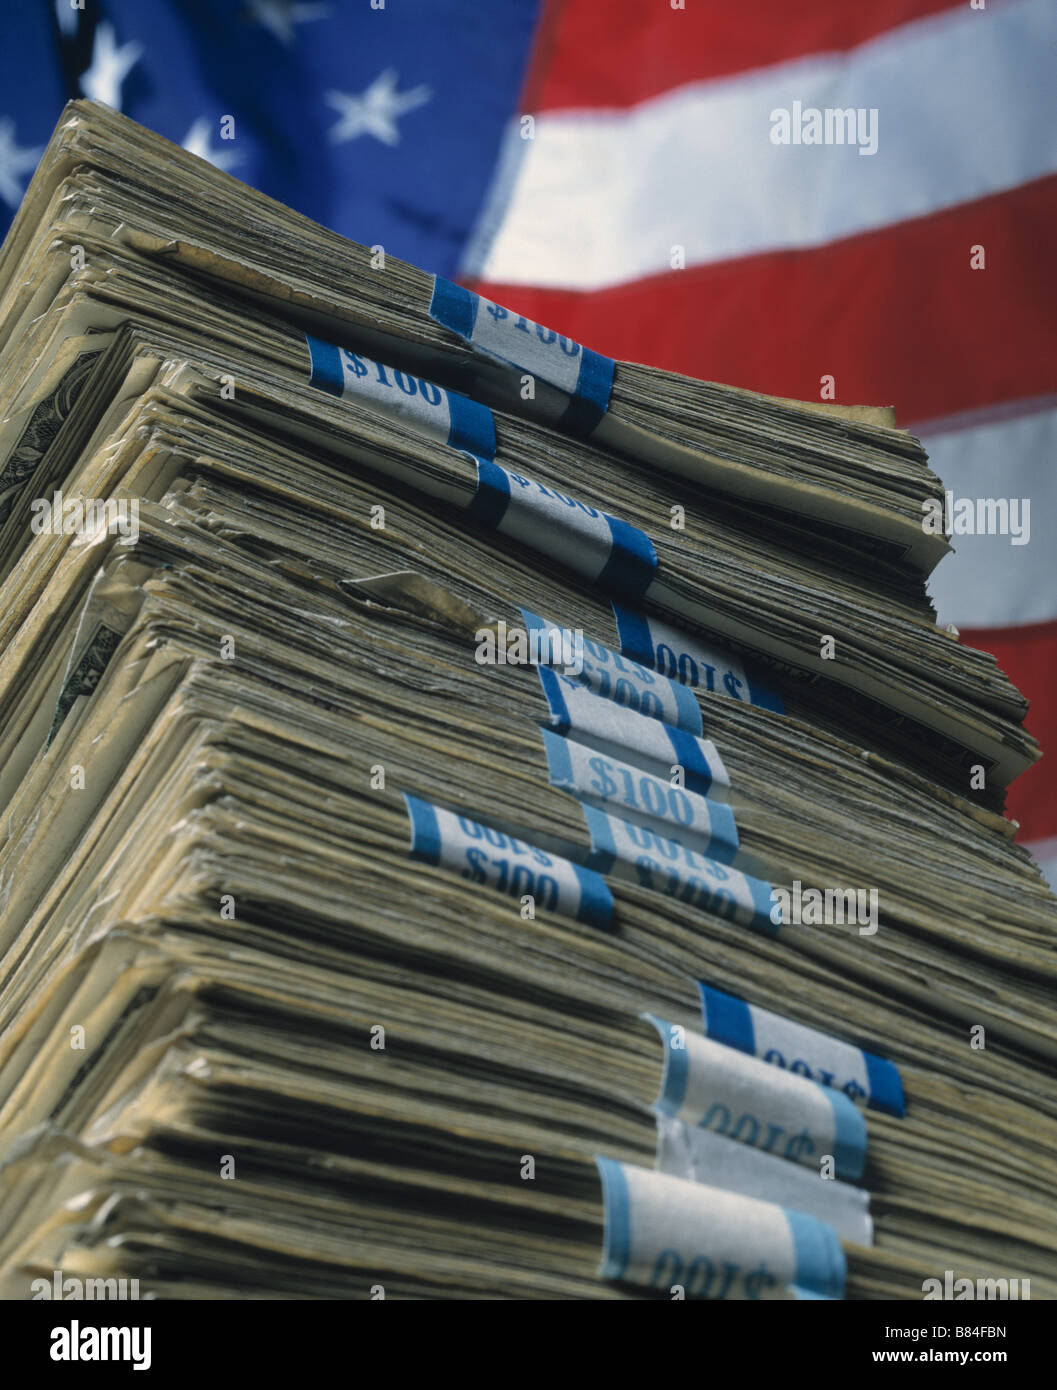 a huge stack of US currency as a symbol of the vast amount of money the USA Owes - Stock Image